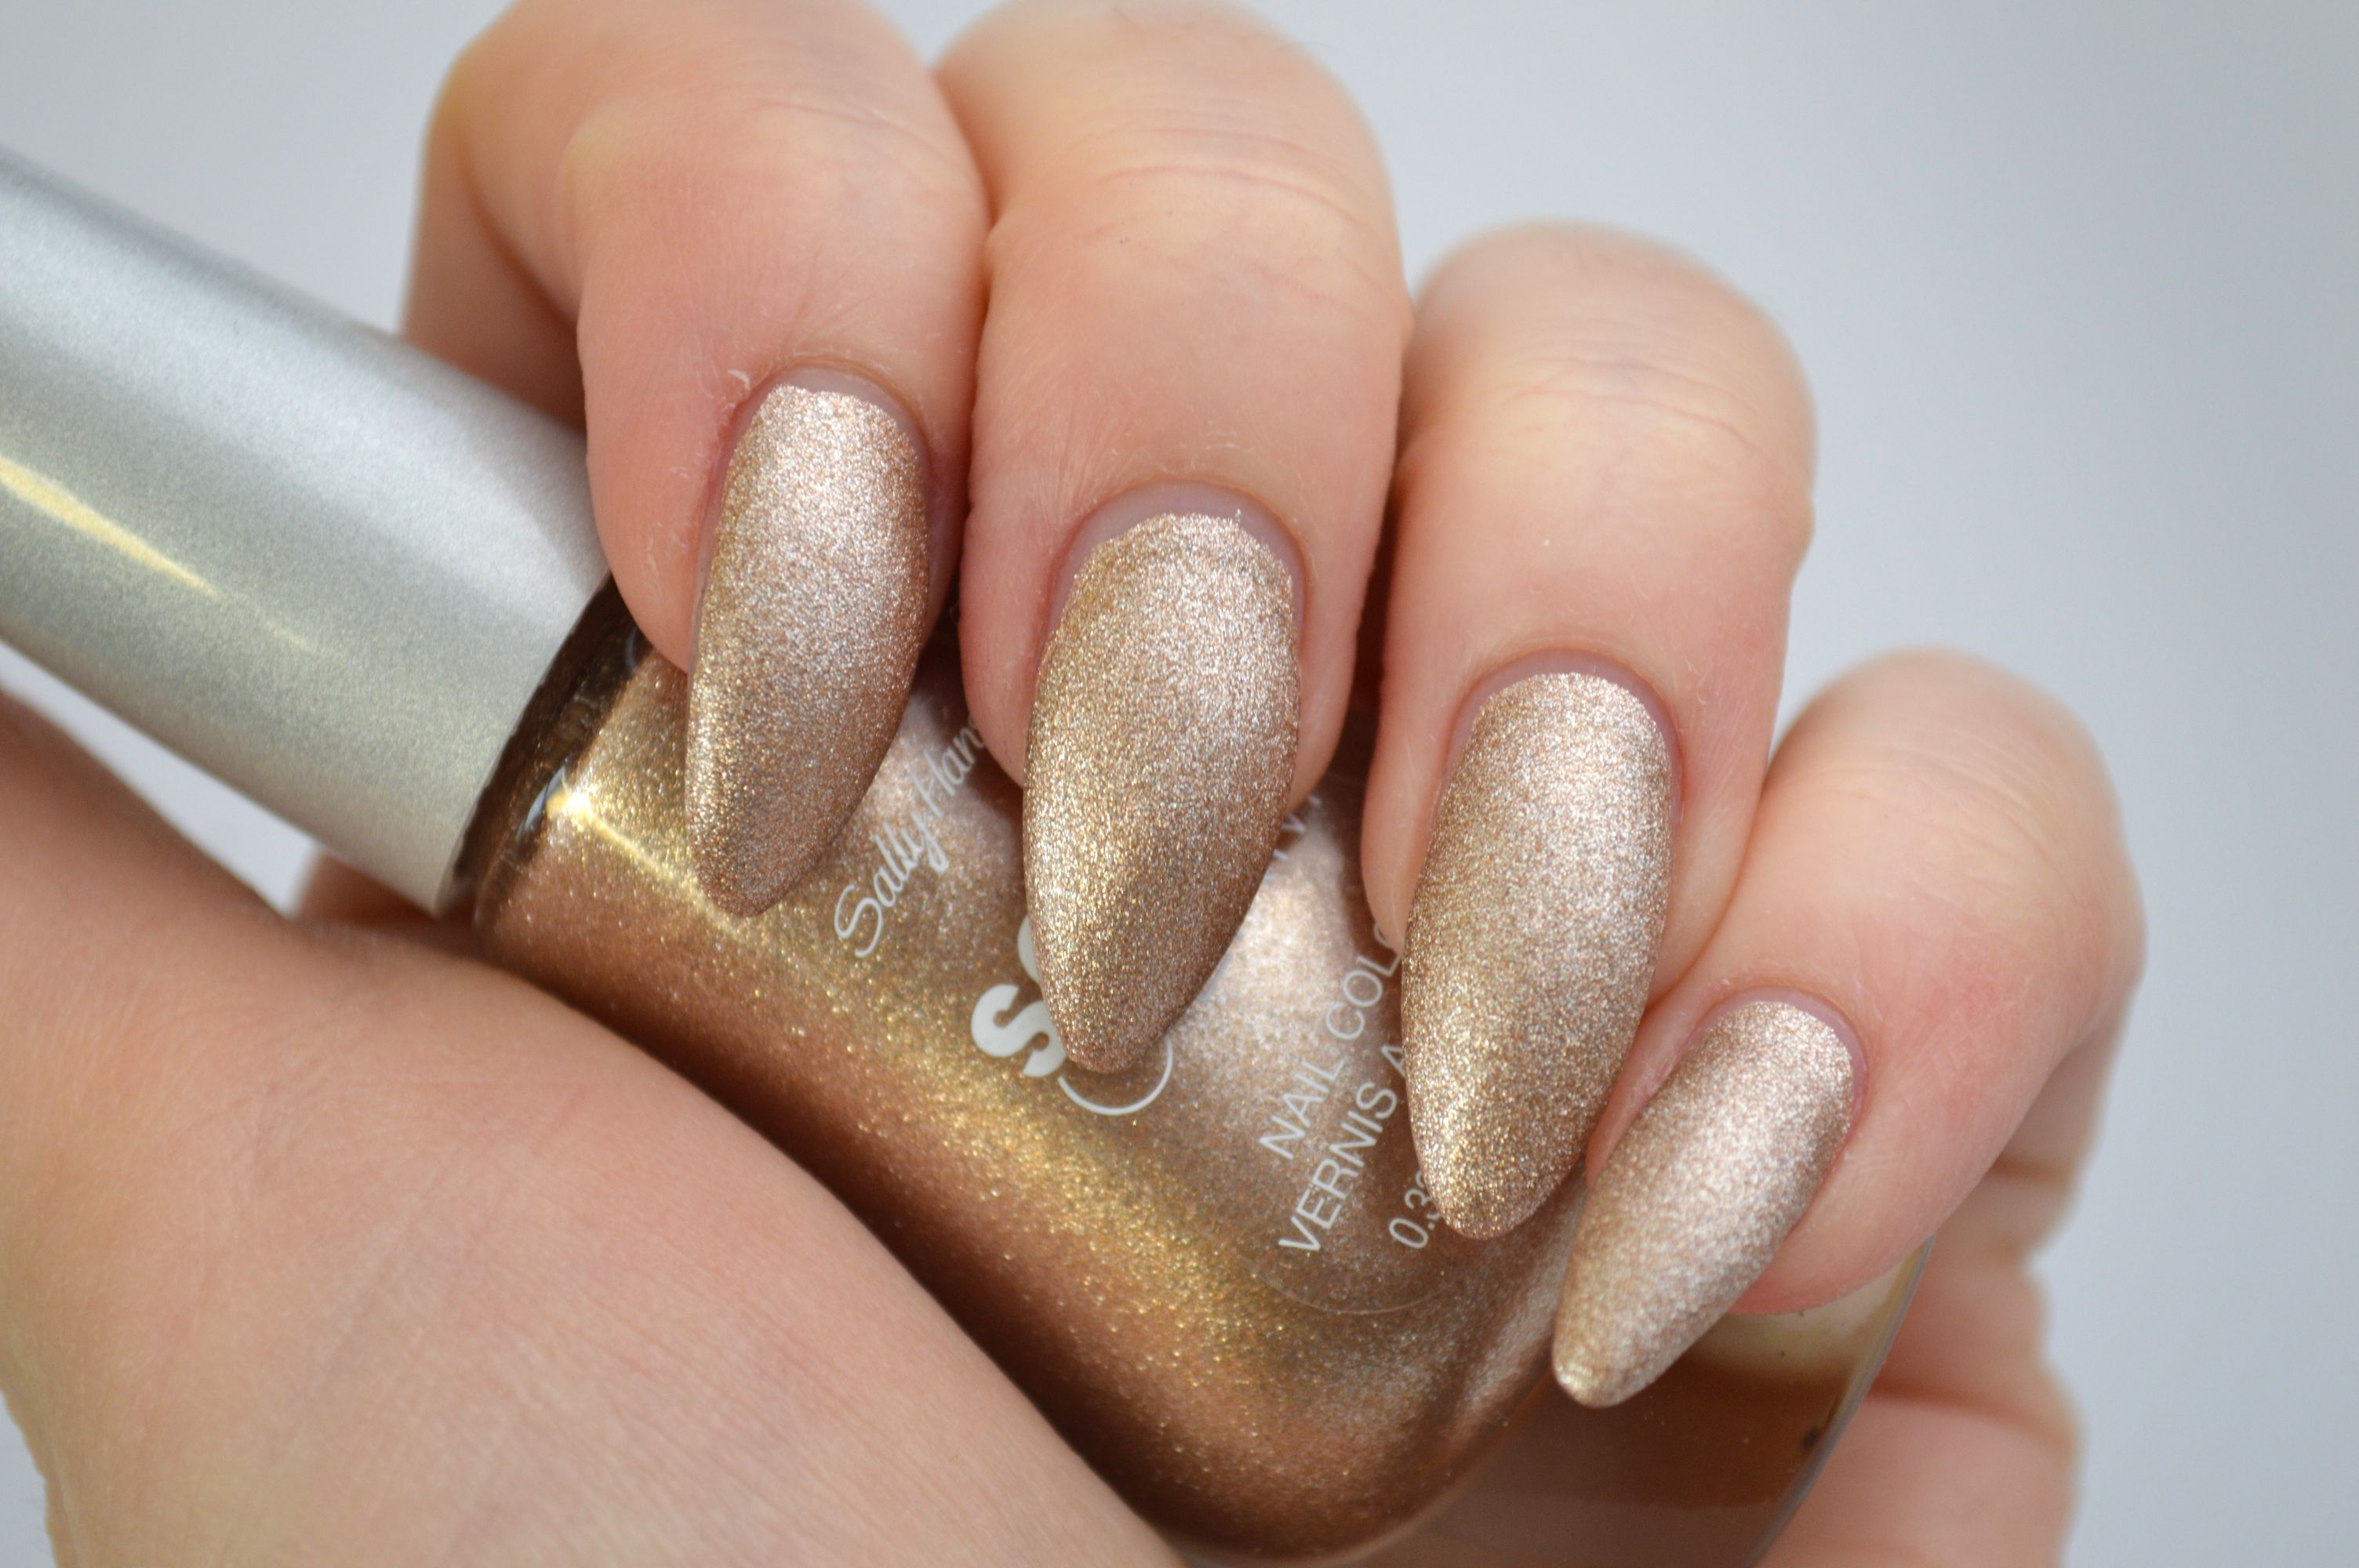 Sally_Hansen_Satin_Glam_Go_Gold_Swatches